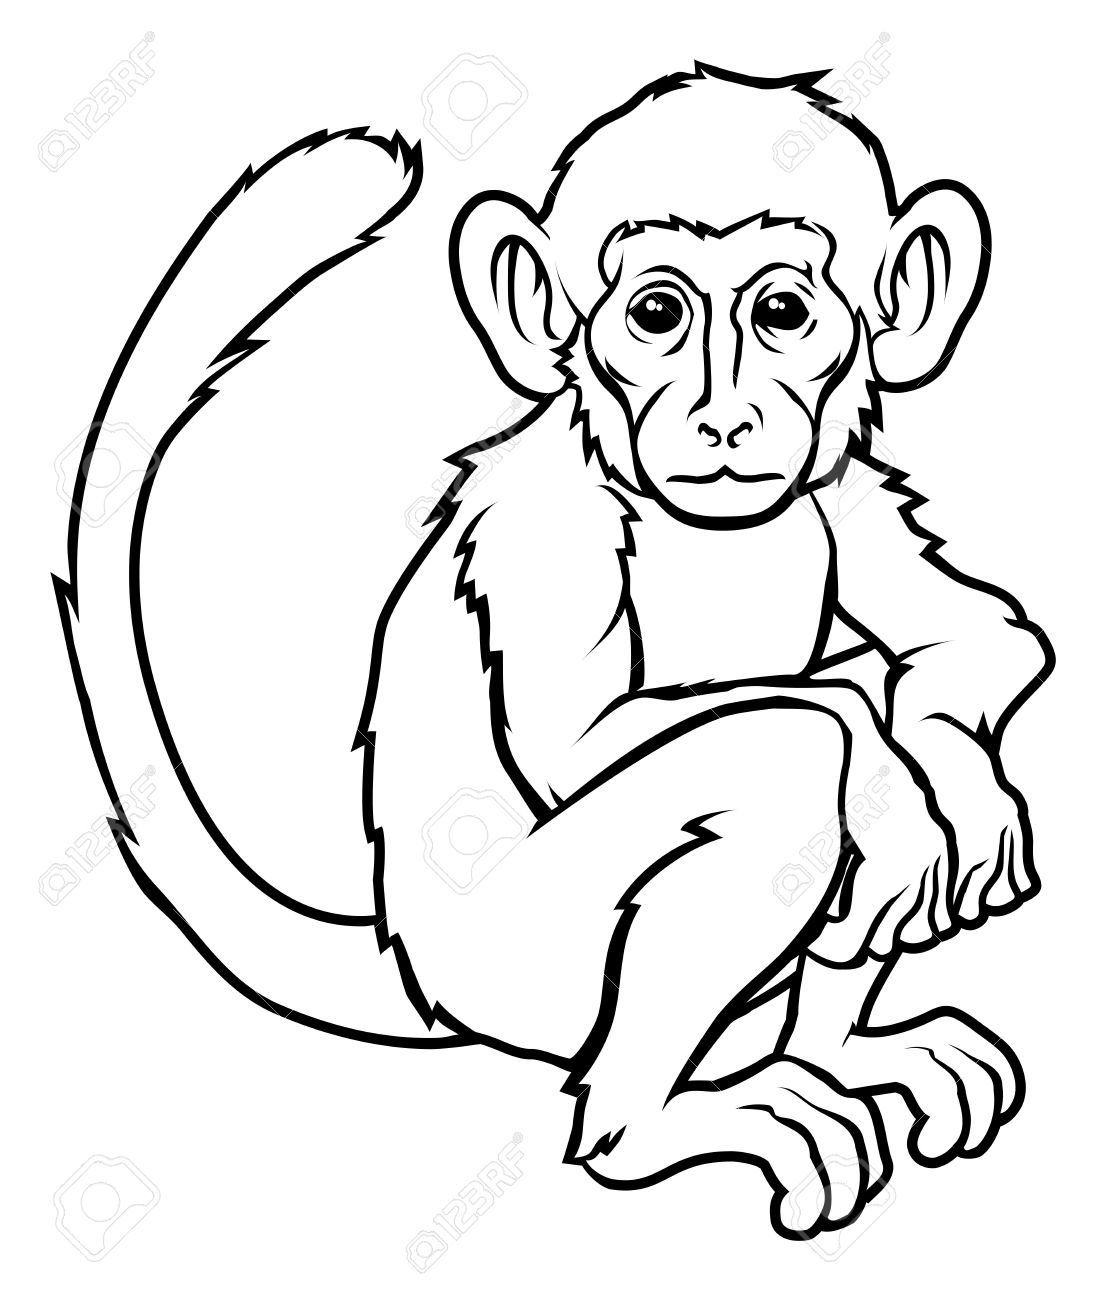 Monkey Line Drawing Gallery